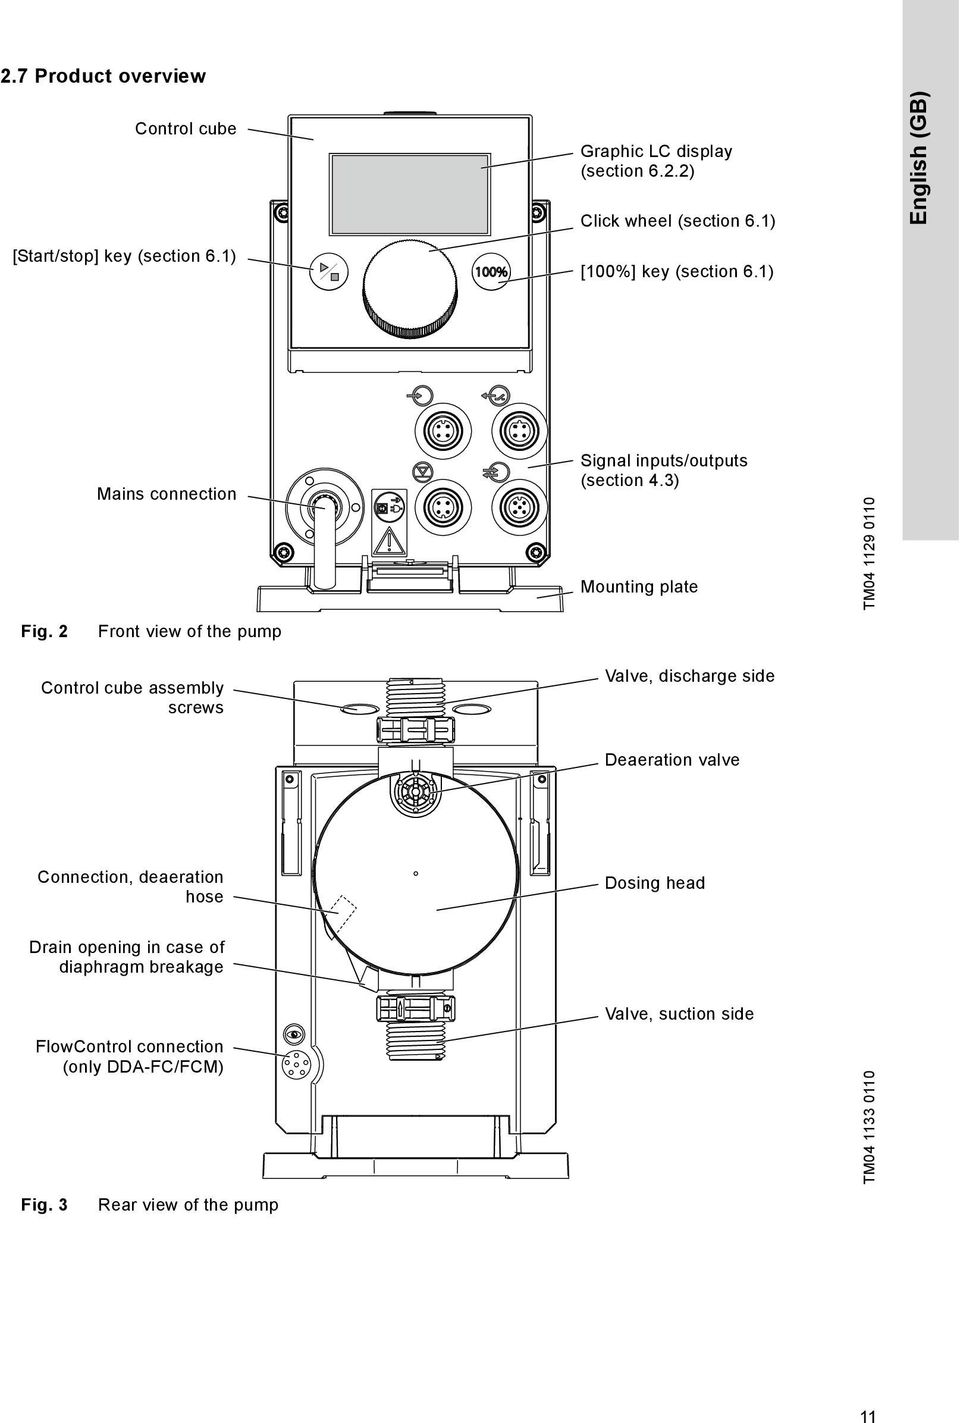 grundfo wiring diagram